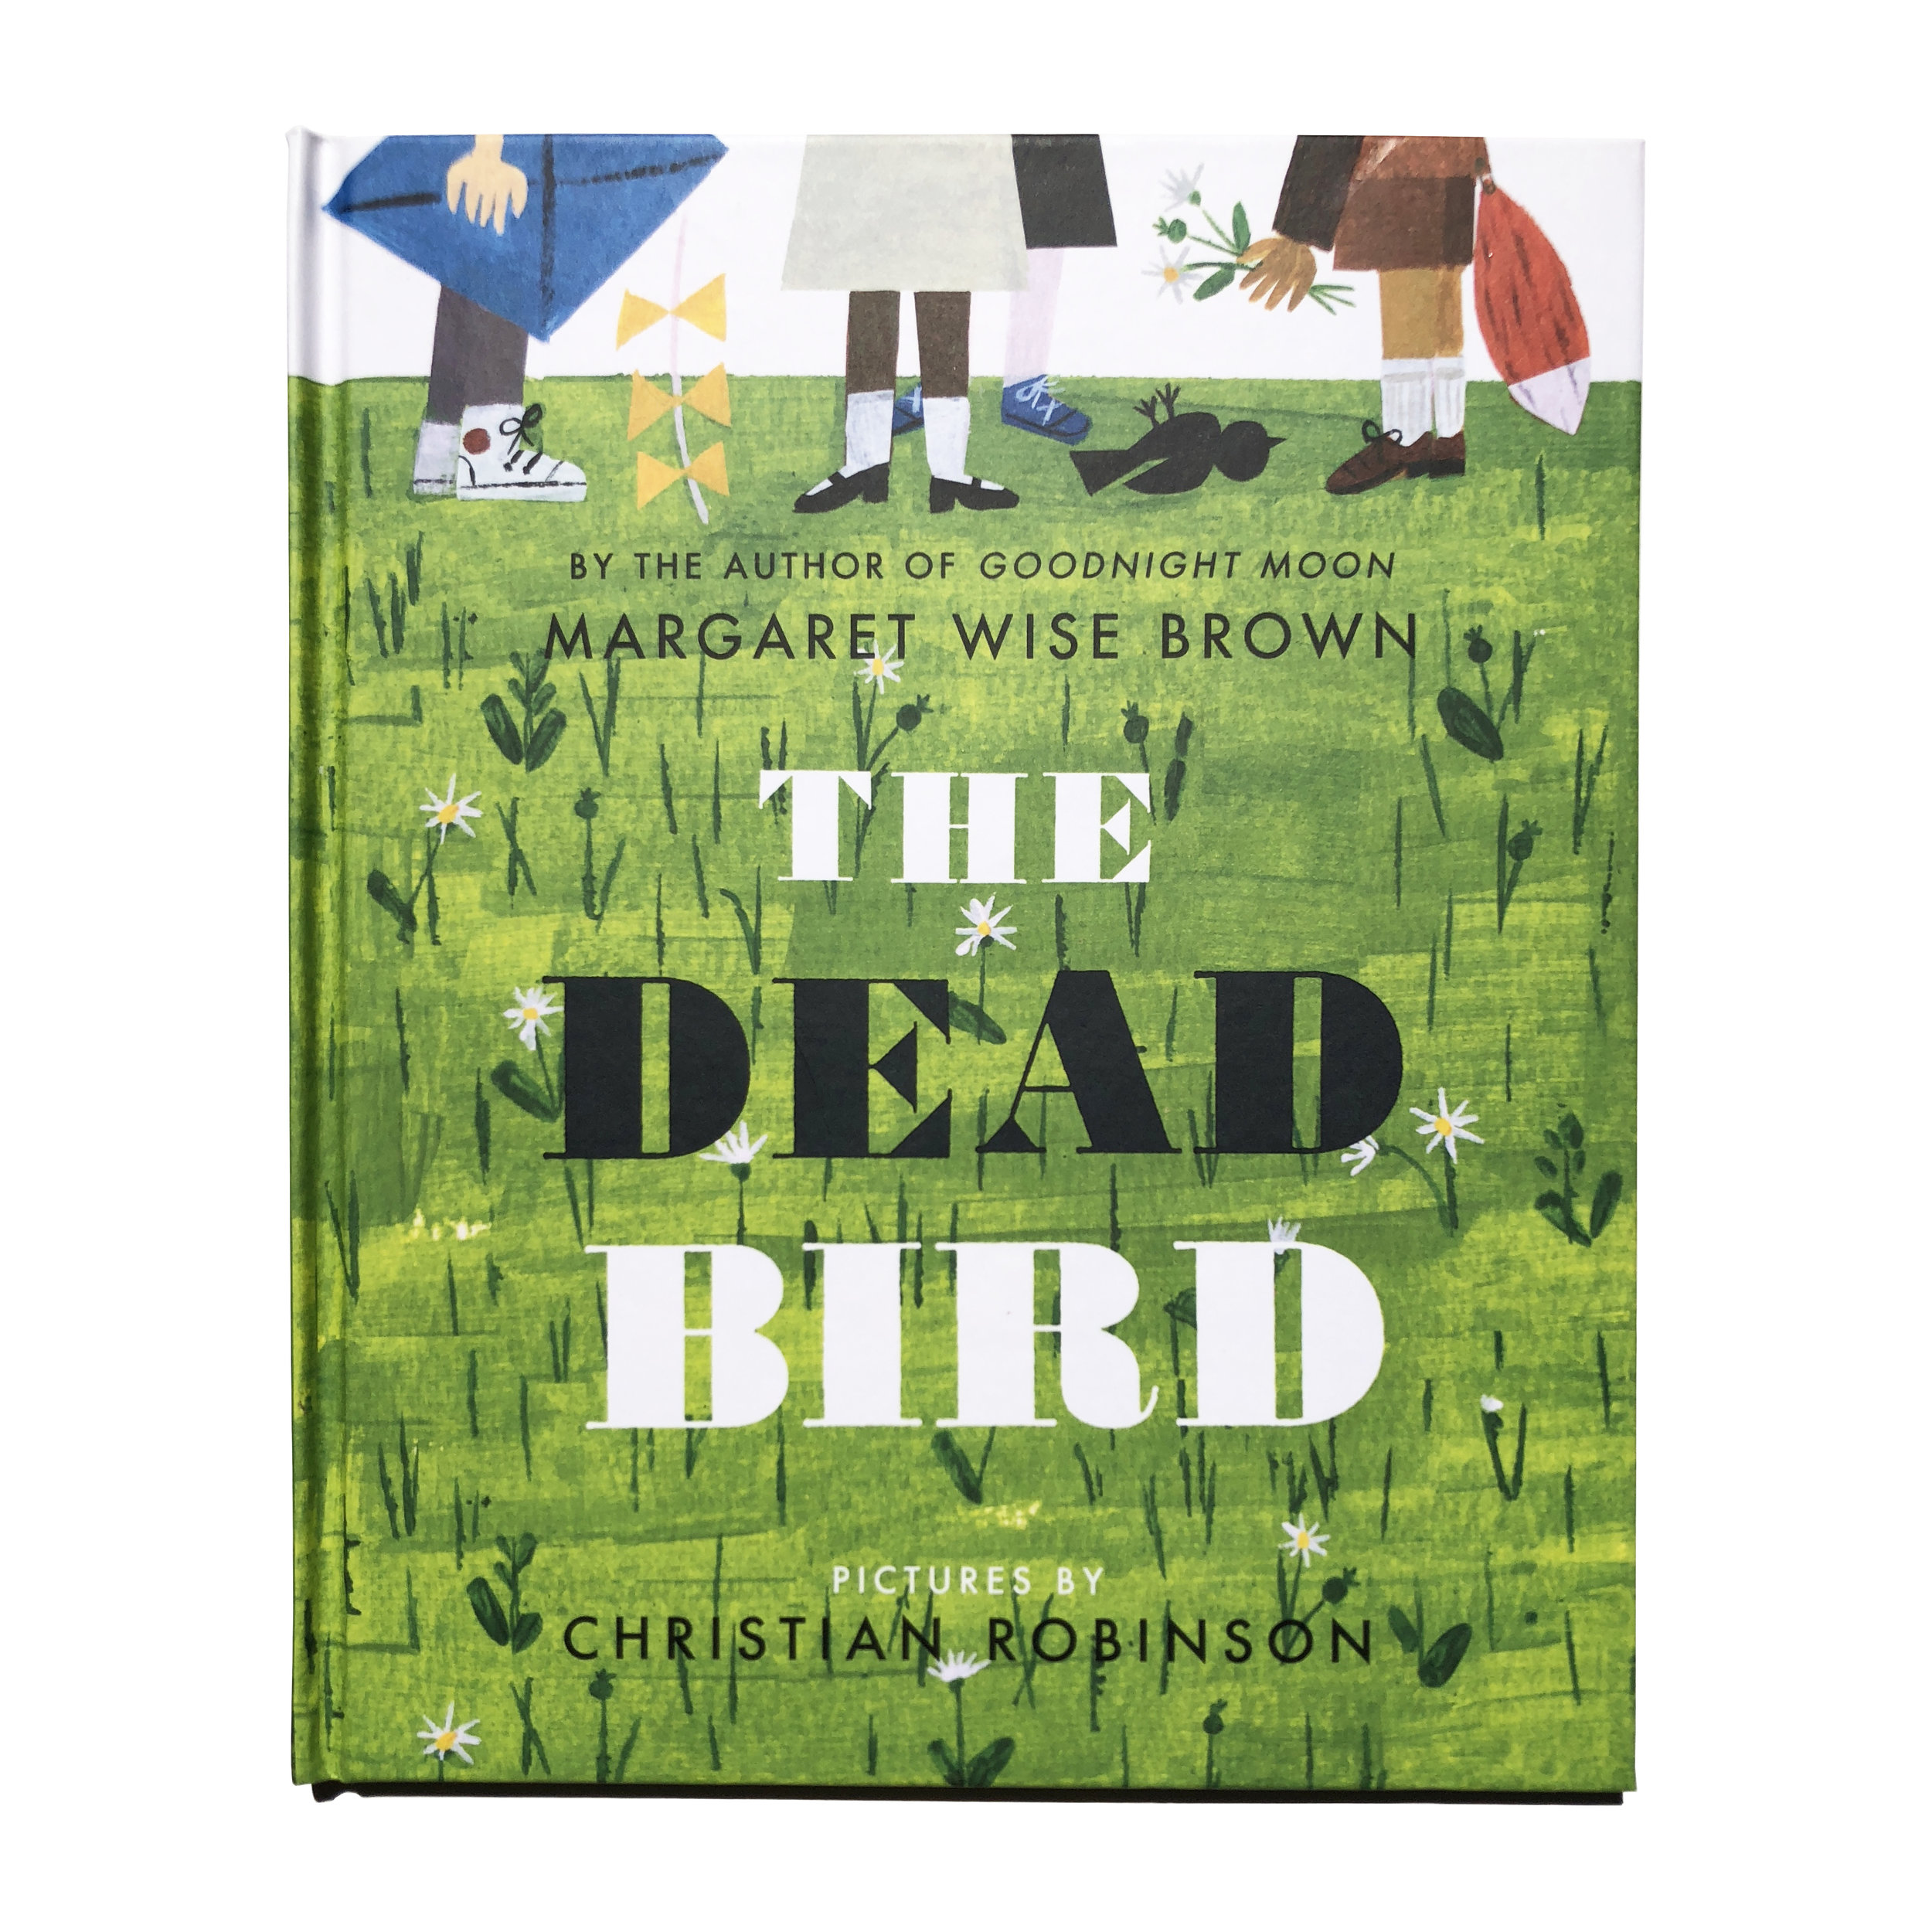 The Dead Bird Cover BG 52 x 52.jpg